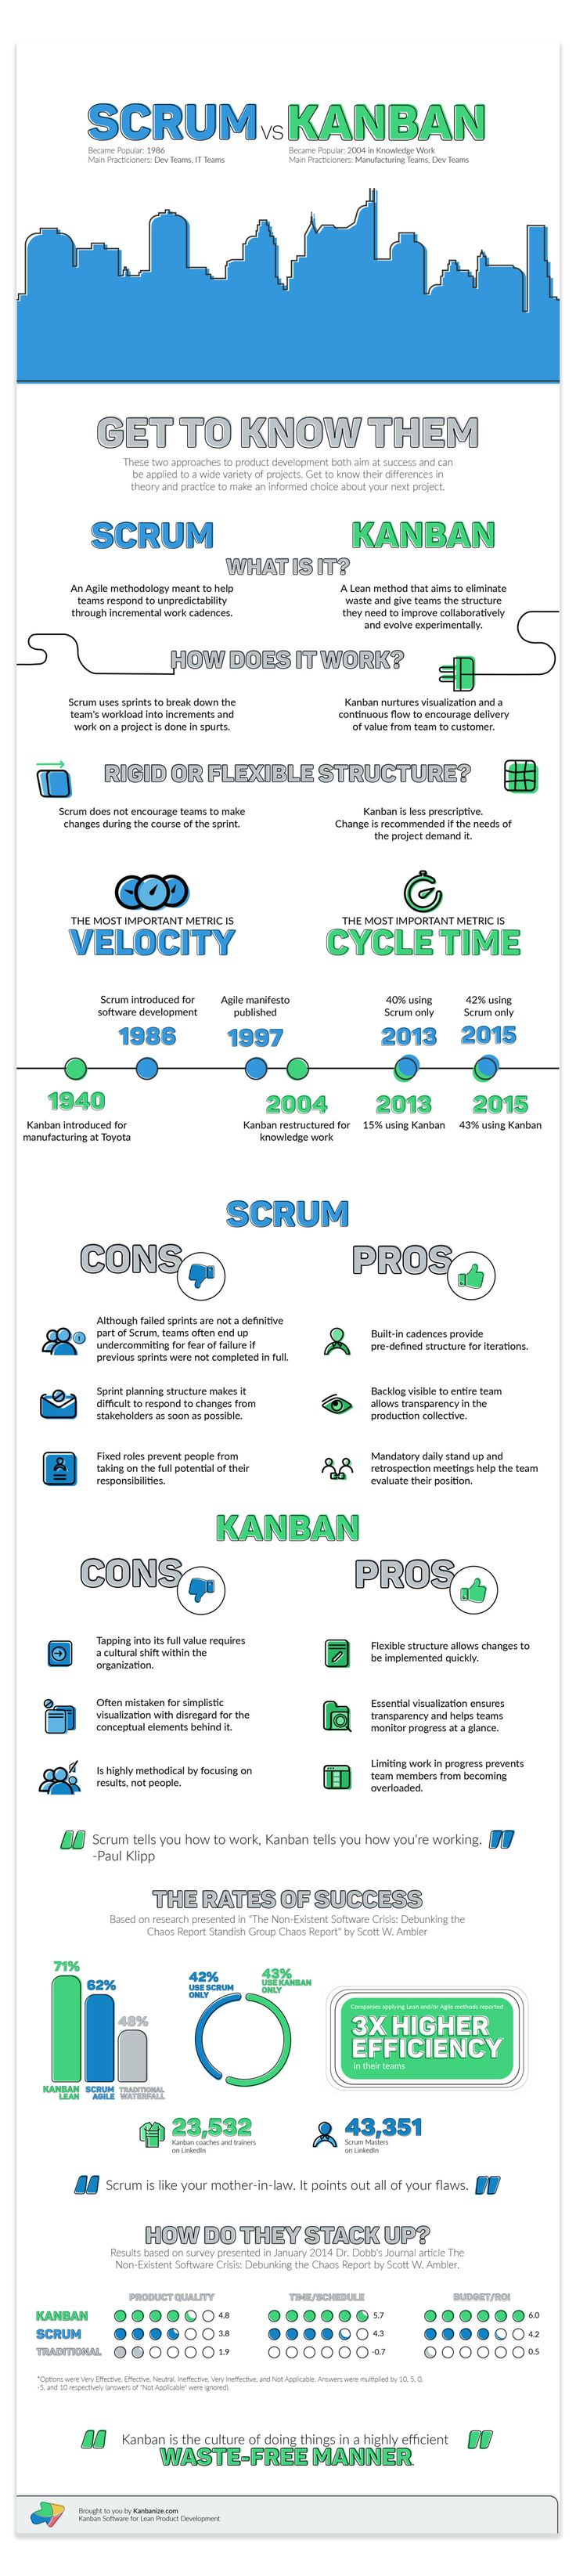 369 best images about agile scrum infographics on for Sdlc vs scrum